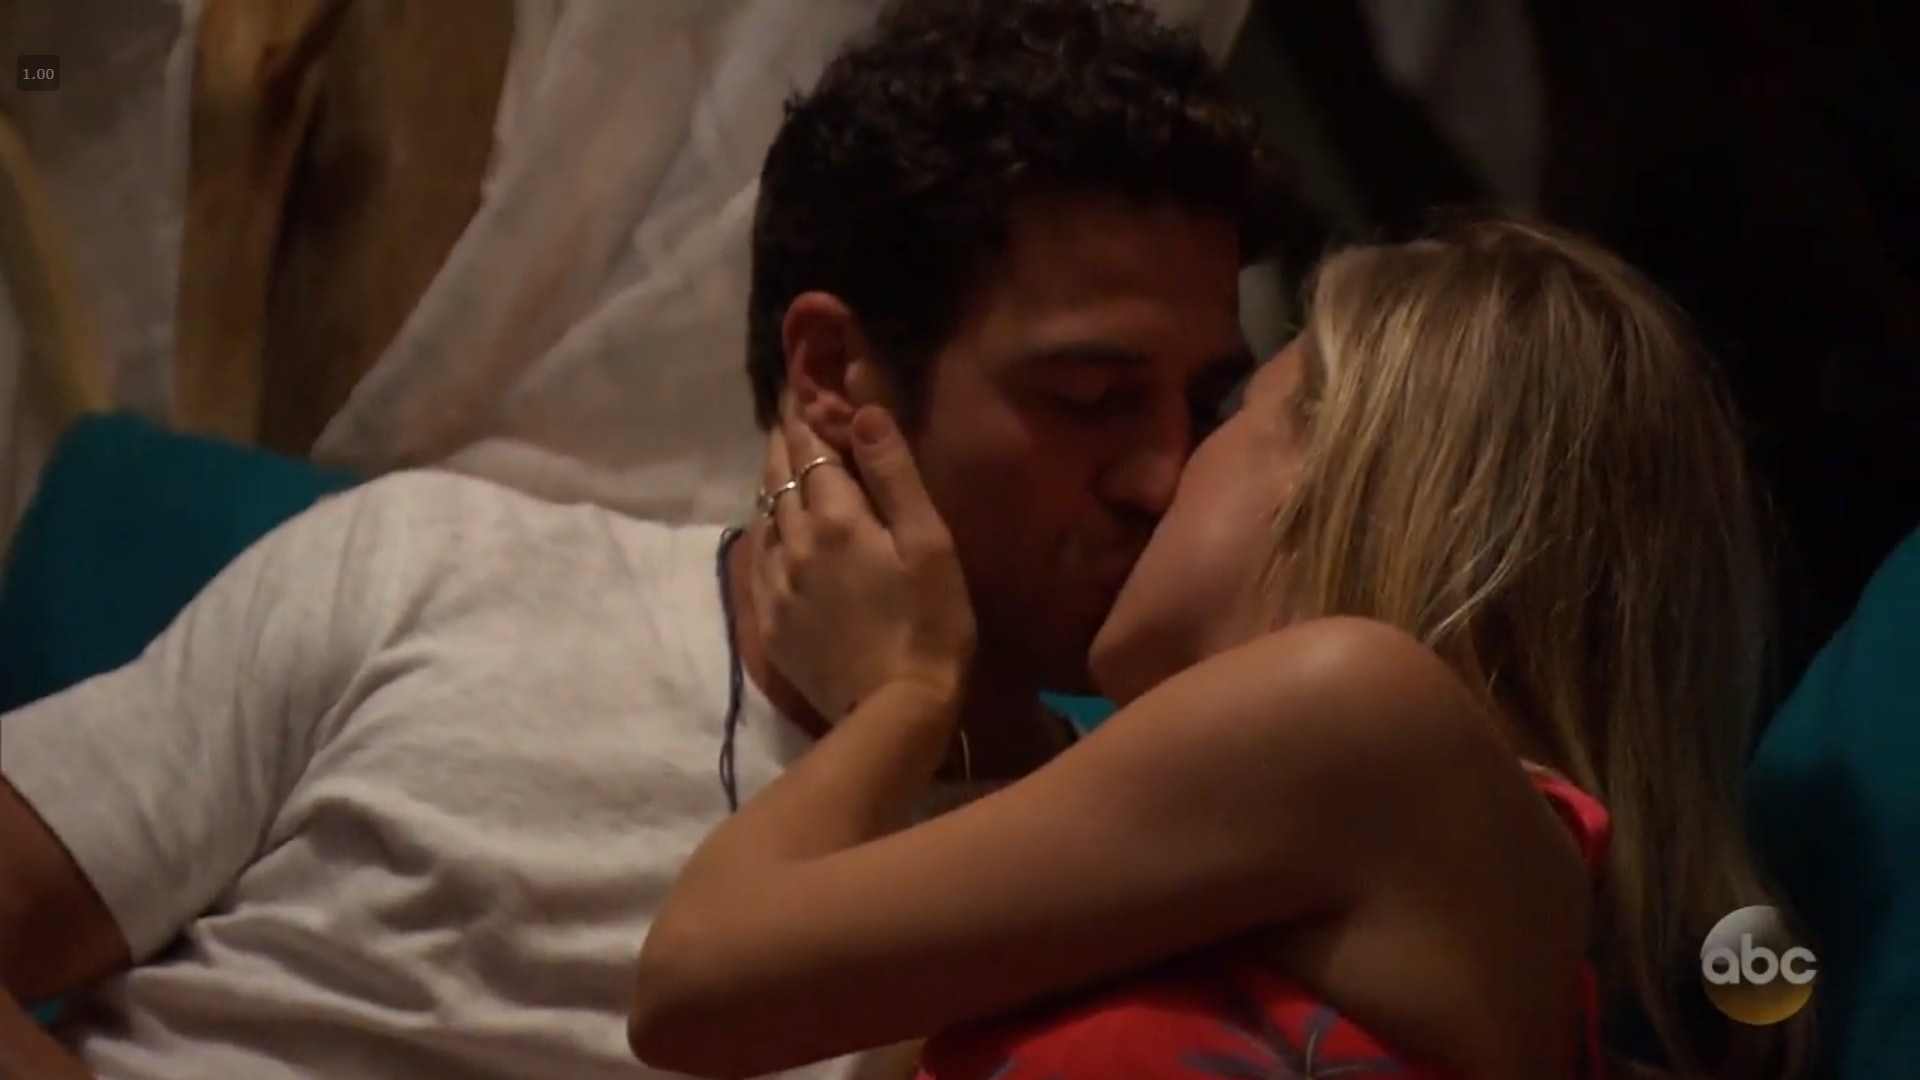 Who Kissed On The 'Bachelor In Paradise' Season 5 Premiere